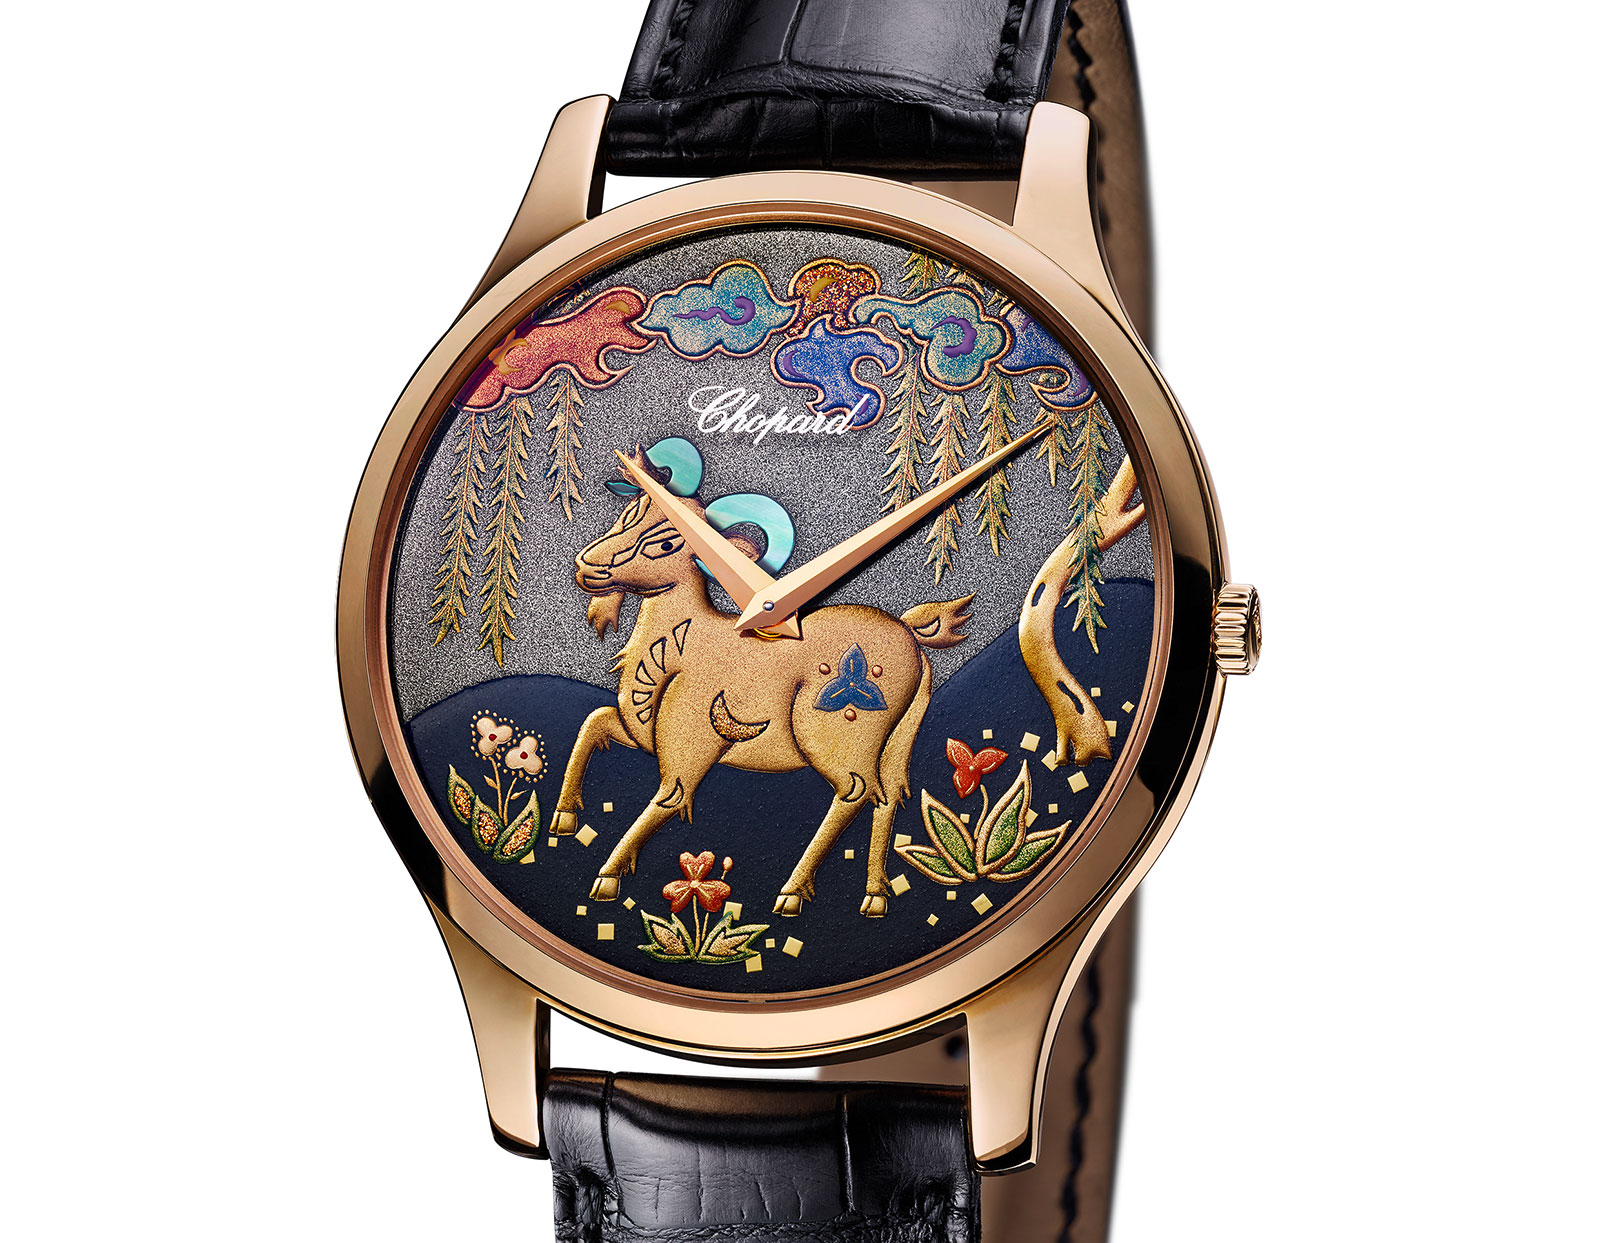 Chopard-L.U.C-XP-Urushi-Year-of-the-Goat-2